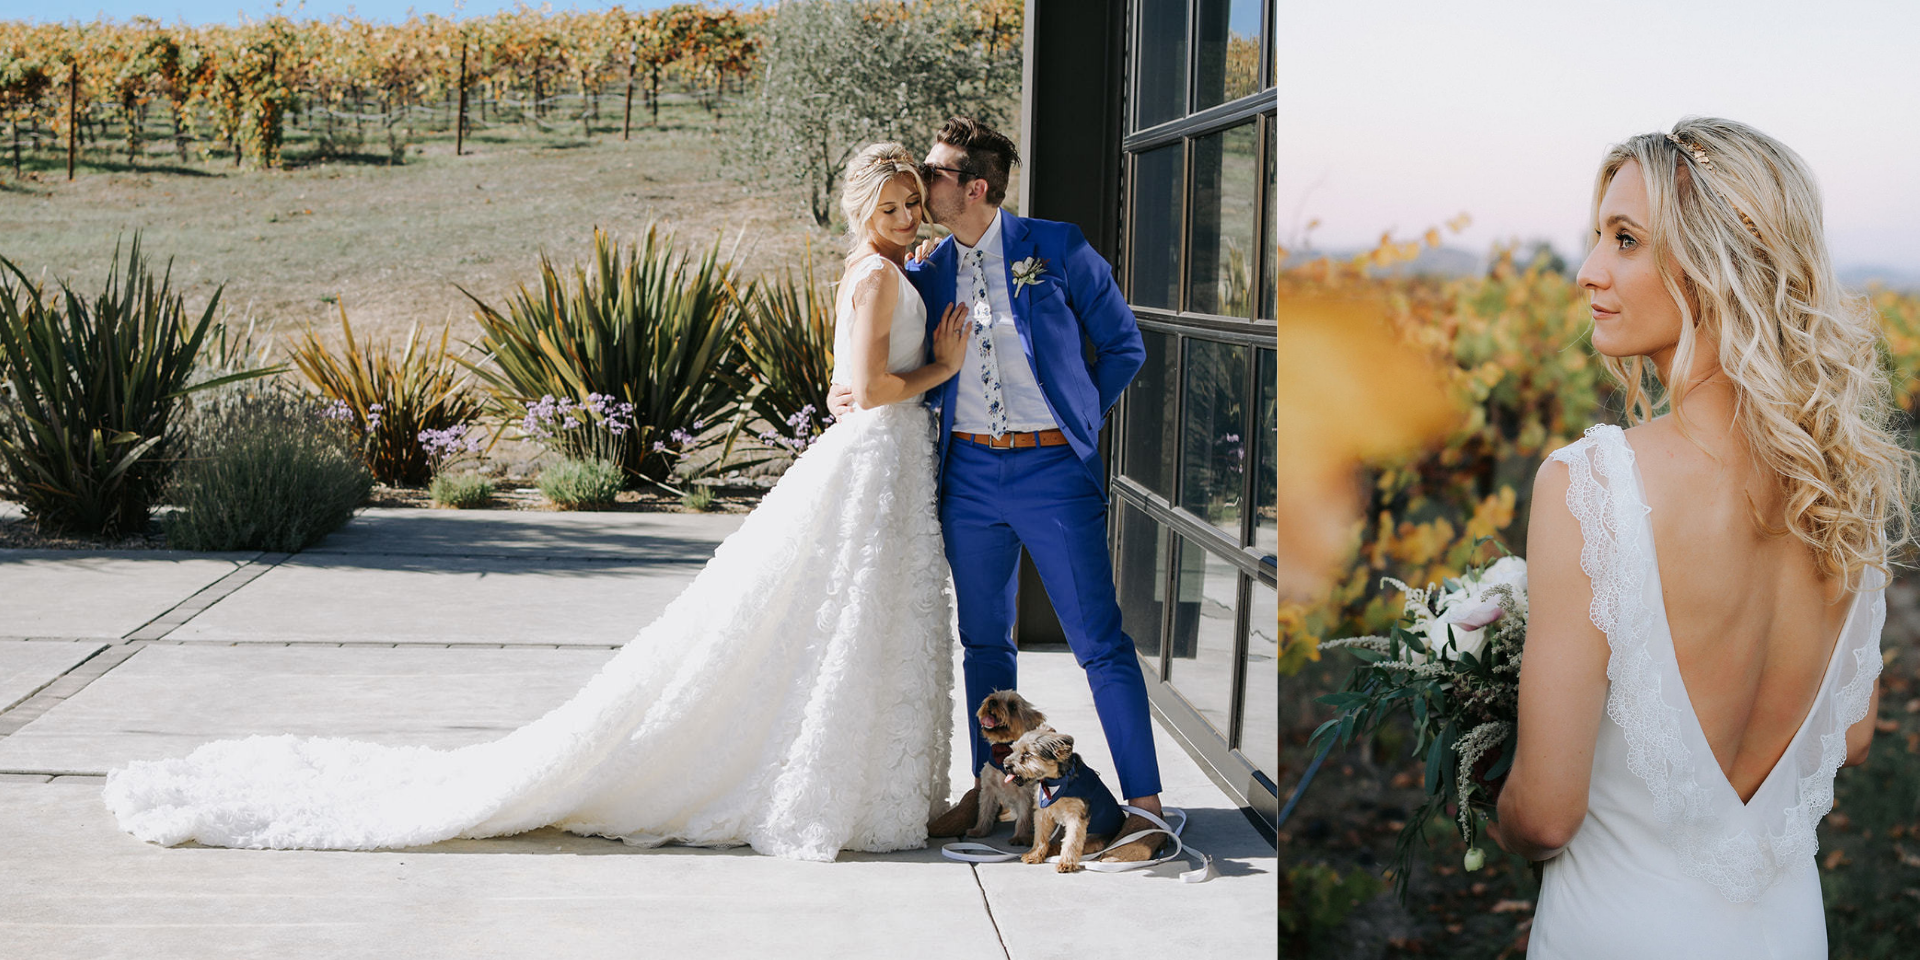 Left: The bride and the groom, holding each other with their pups at their feet. Right: The bride flaunts her back in her low-back, lace-trimmed dress.